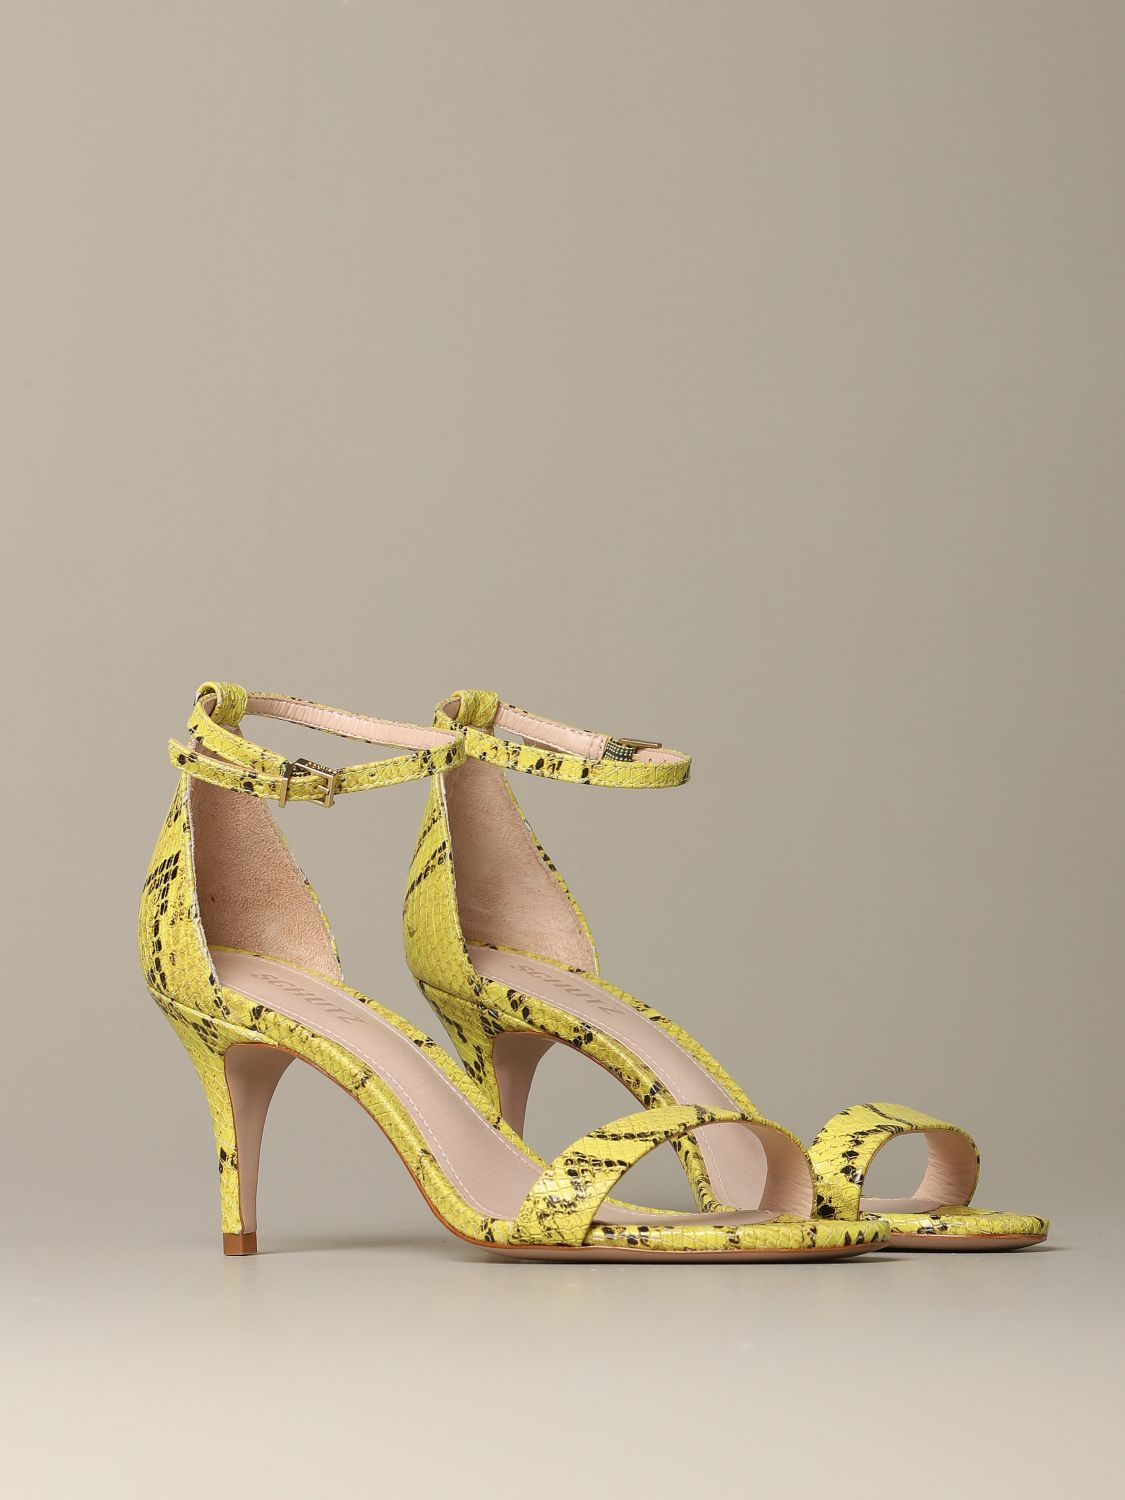 Heeled sandals Schutz: Shoes women Schutz yellow 2